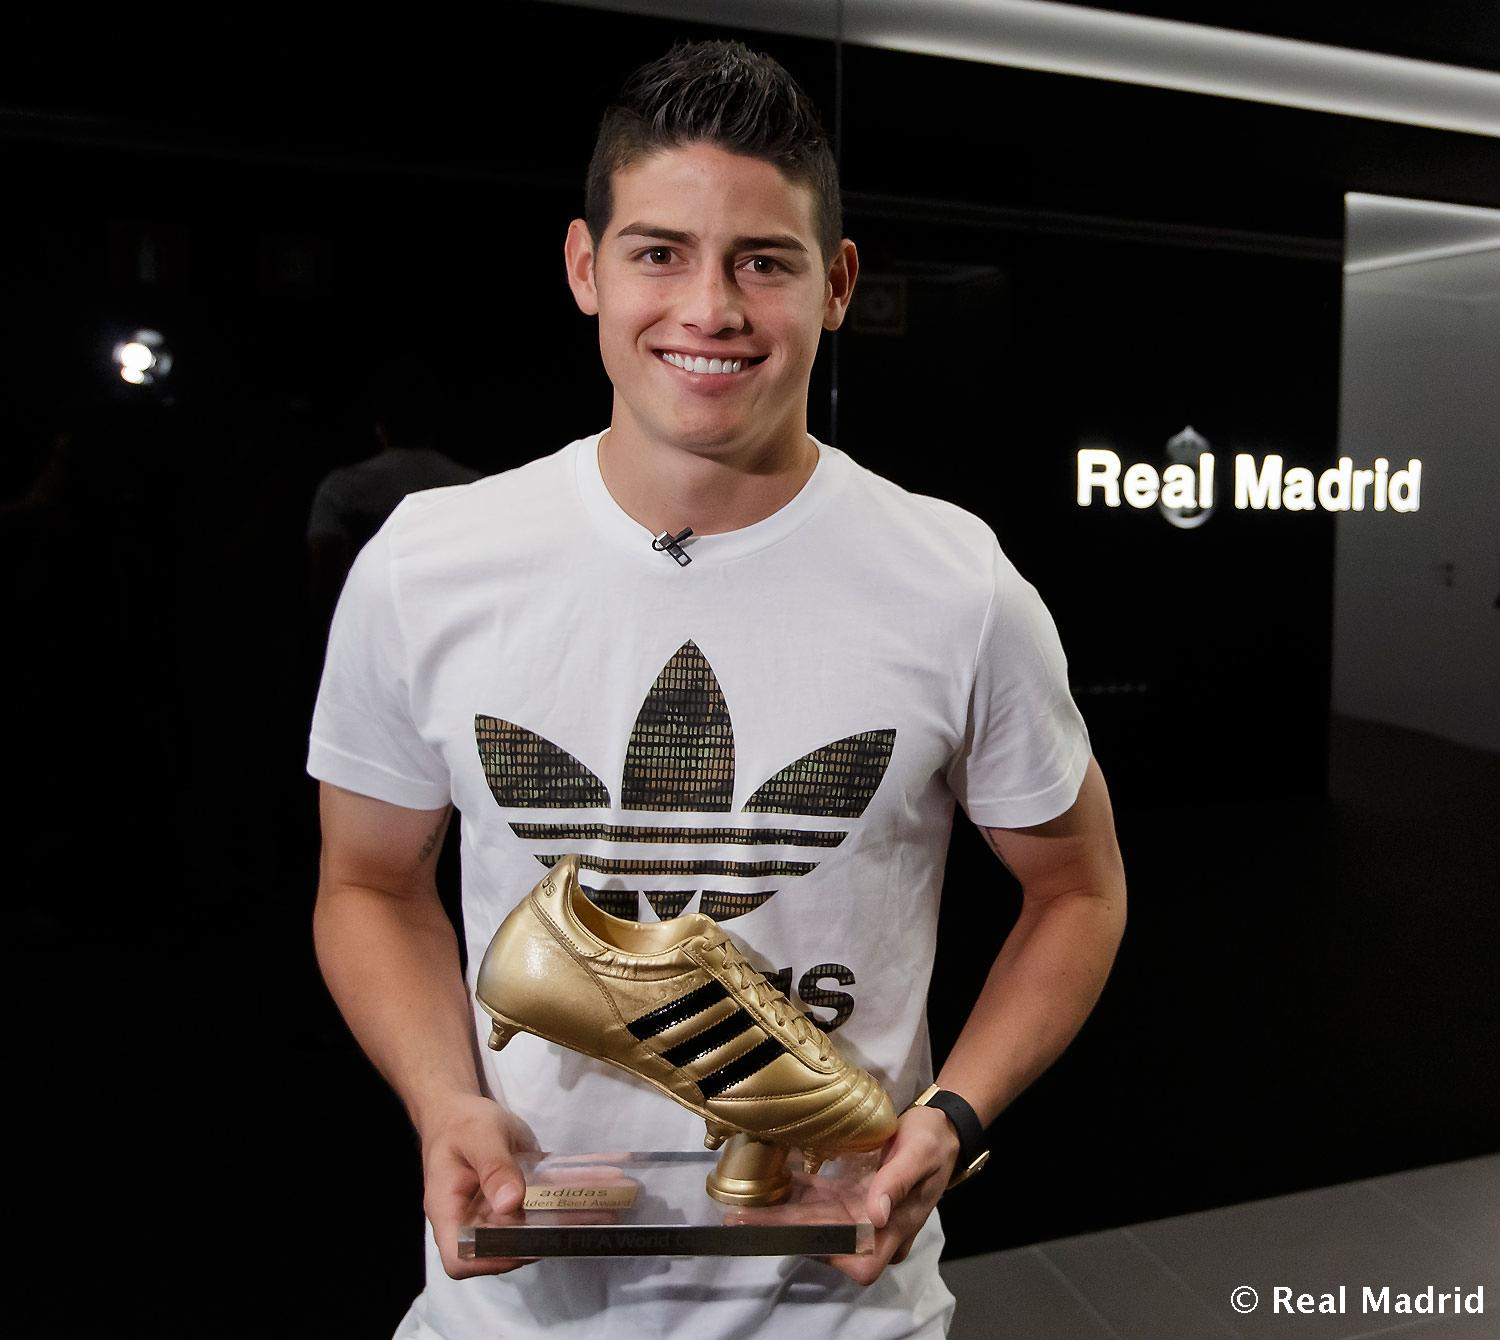 Real Madrid - James Rodríguez, Bota de Oro del Mundial 2014 - 08-08-2014